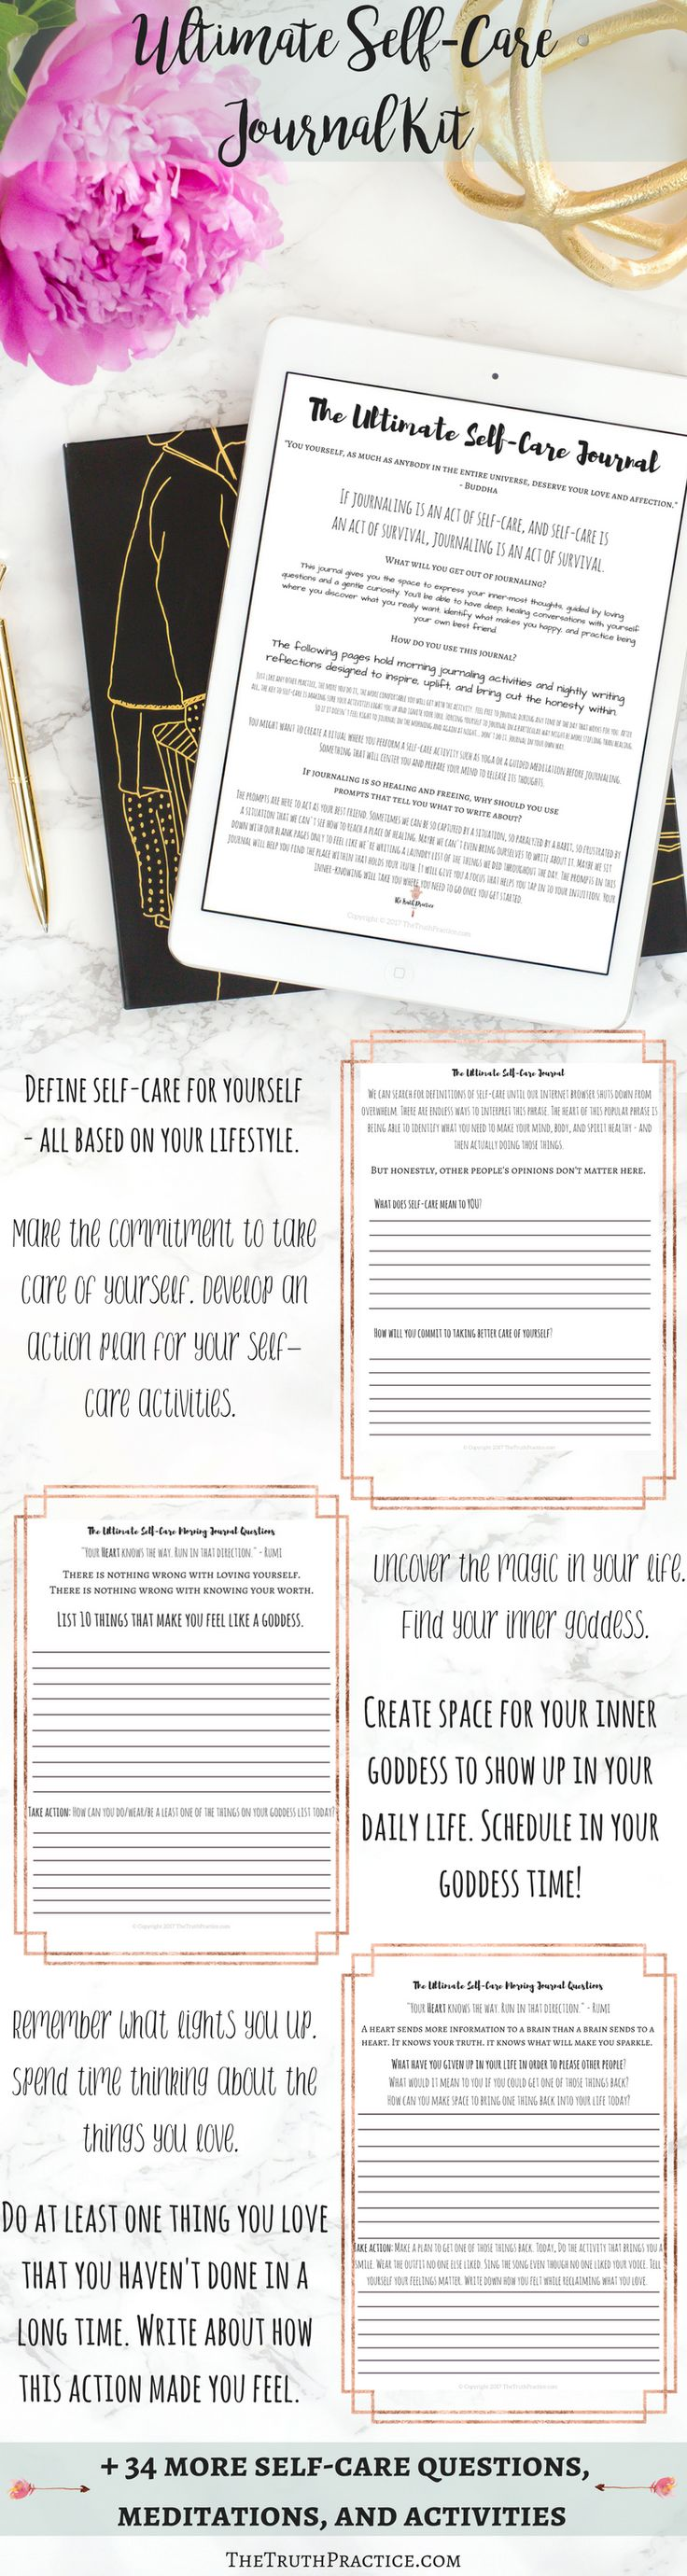 You don't have to brainstorm self-care activities with this self-care printable journal. Each self-care worksheet is filled with journal/ writing prompts to help you discover your passions, find your joy, open your heart, and heal your soul. The Ultimate Self-Care journal asks you the questions you wish your best friend would ask. Click the pin to get journaling, self-care therapy!